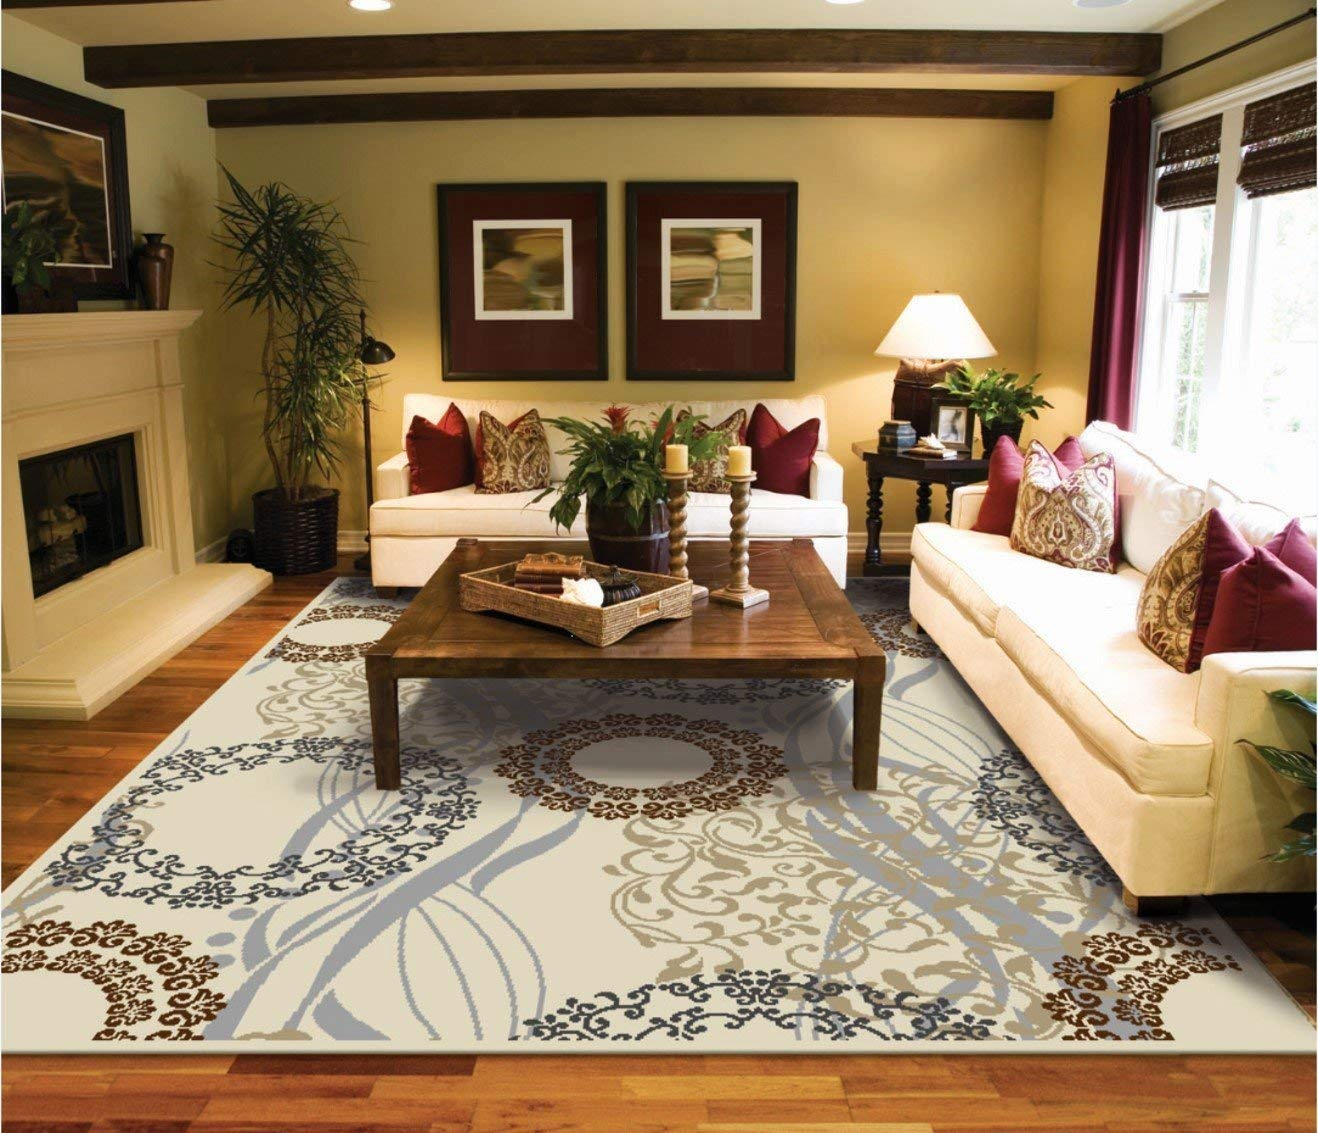 8x10 area rugs amazon.com: large area rugs 8x11 dining room rugs for hardwood floors cream WCNUSPH